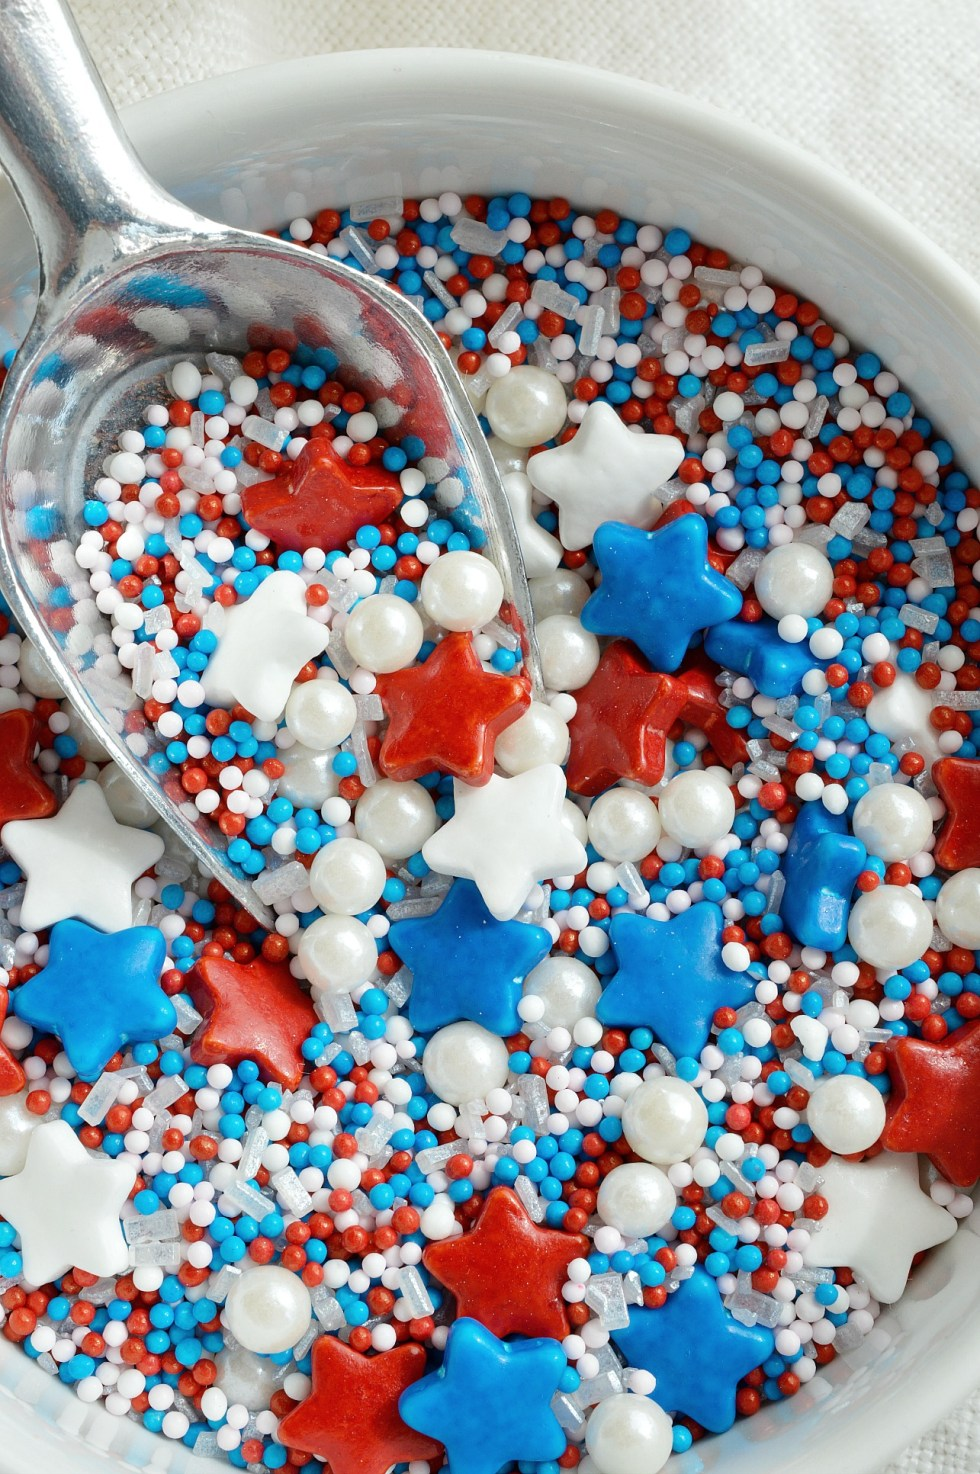 Make an easy and festive treat to enjoy while watching the fireworks. 4th of July Dessert Popcorn is popped microwave popcorn drizzled with white chocolate and topped with Red, White and Blue sprinkles! This patriotic dessert recipe is perfect for feeding a crowd!